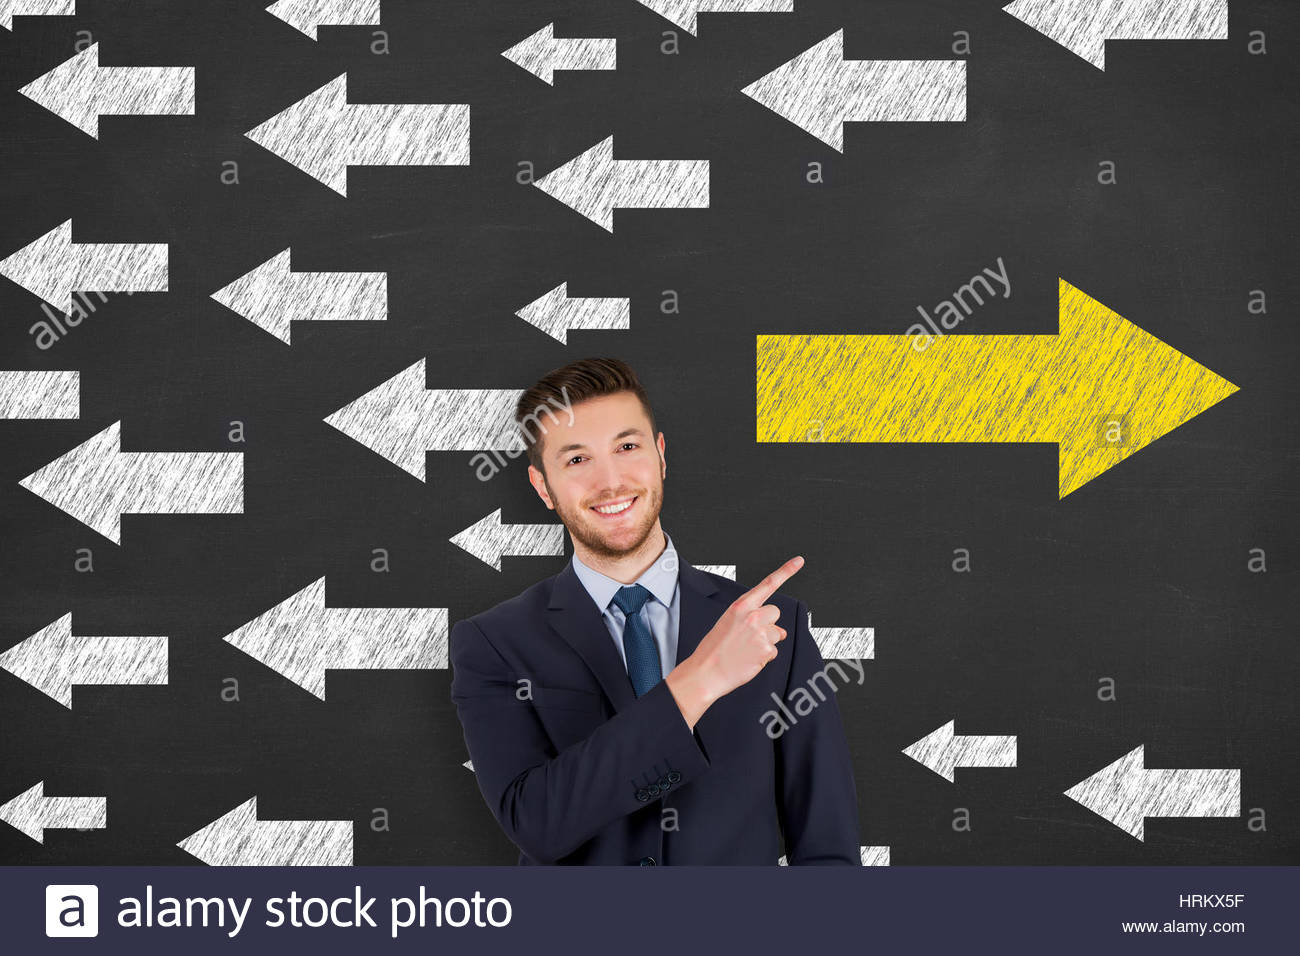 Arrows Going Your Own Way on Blackboard - Stock Image